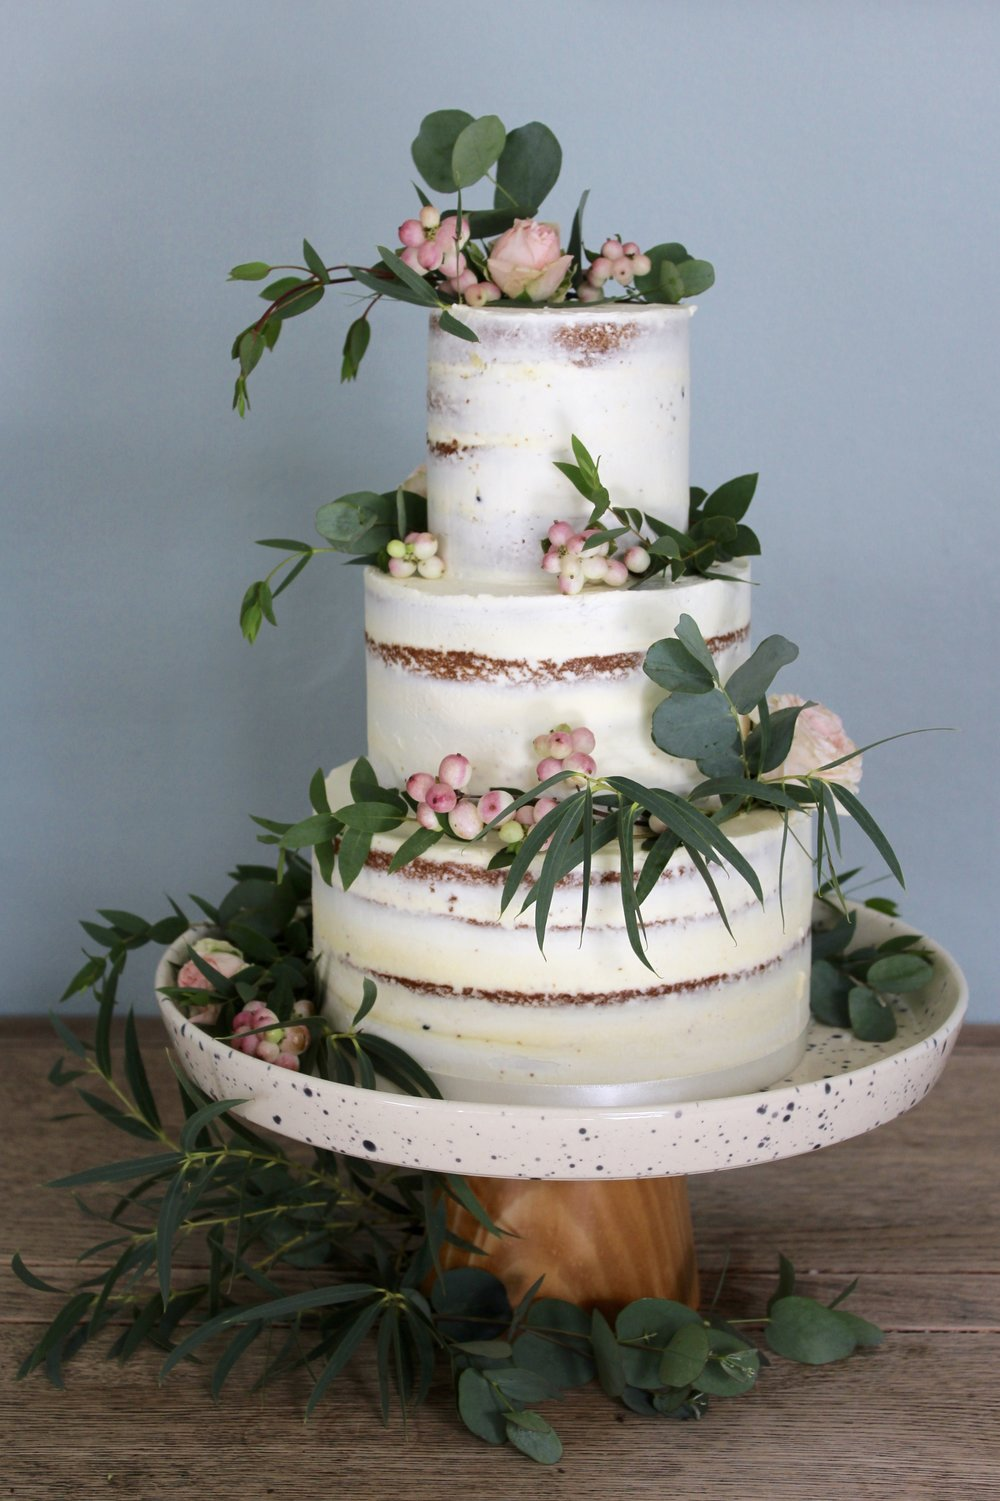 Semi-naked Green and White Wedding Cake by Yolk www.cakesbyyolk.com